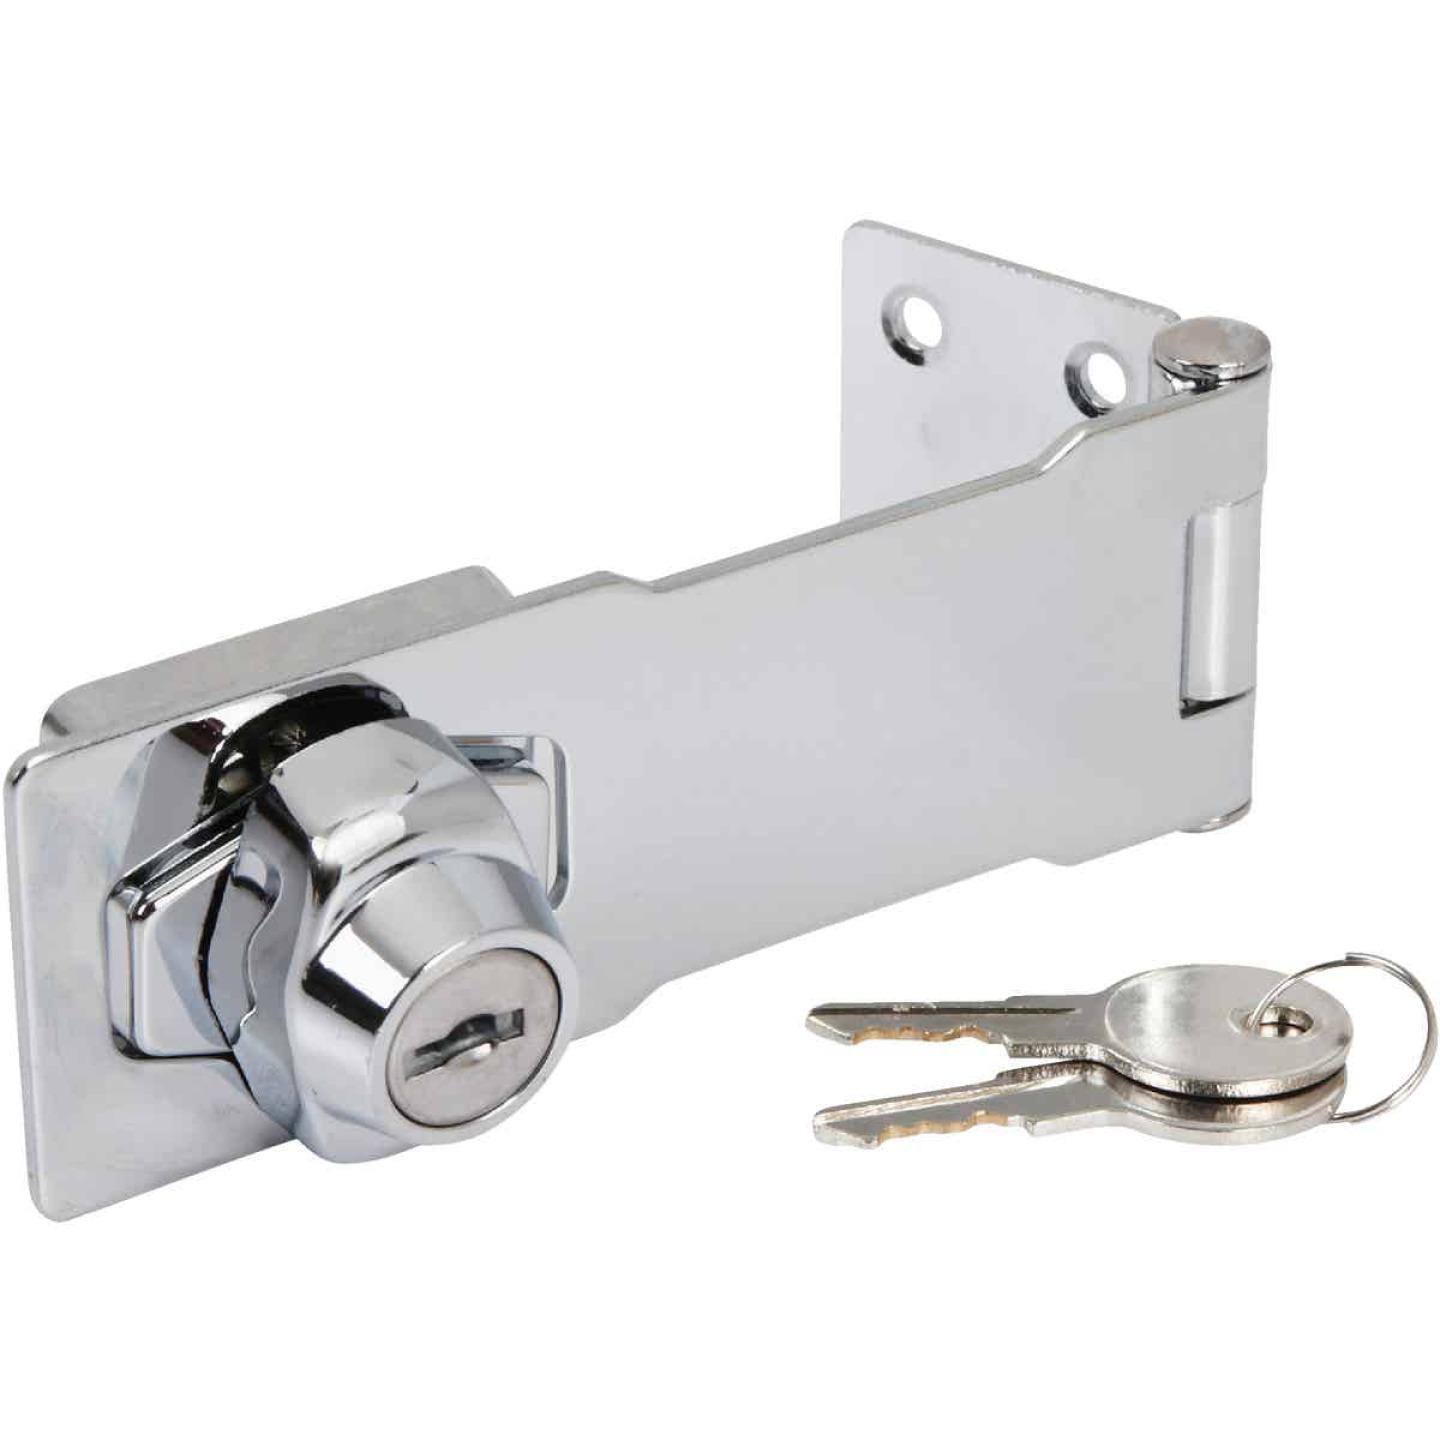 National 4-1/2 In. Keyed Alike Hasp Lock Image 3